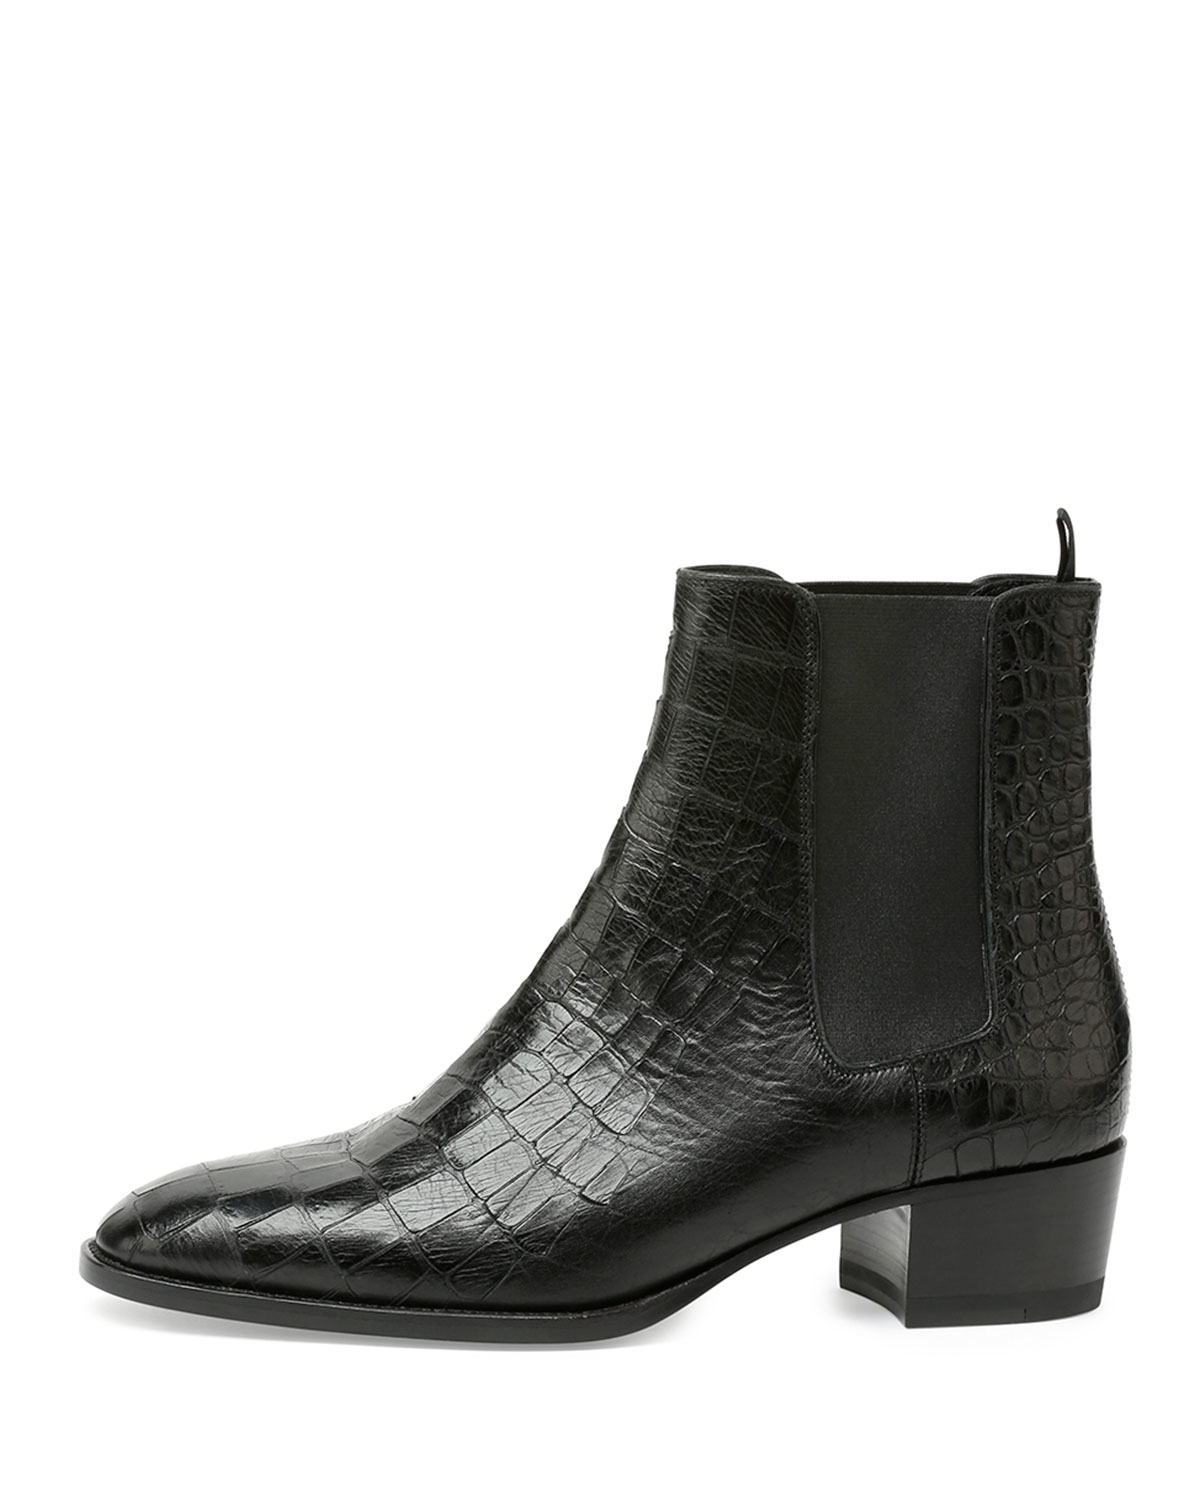 Saint Laurent Blake Croc Embossed Leather Ankle Boot In